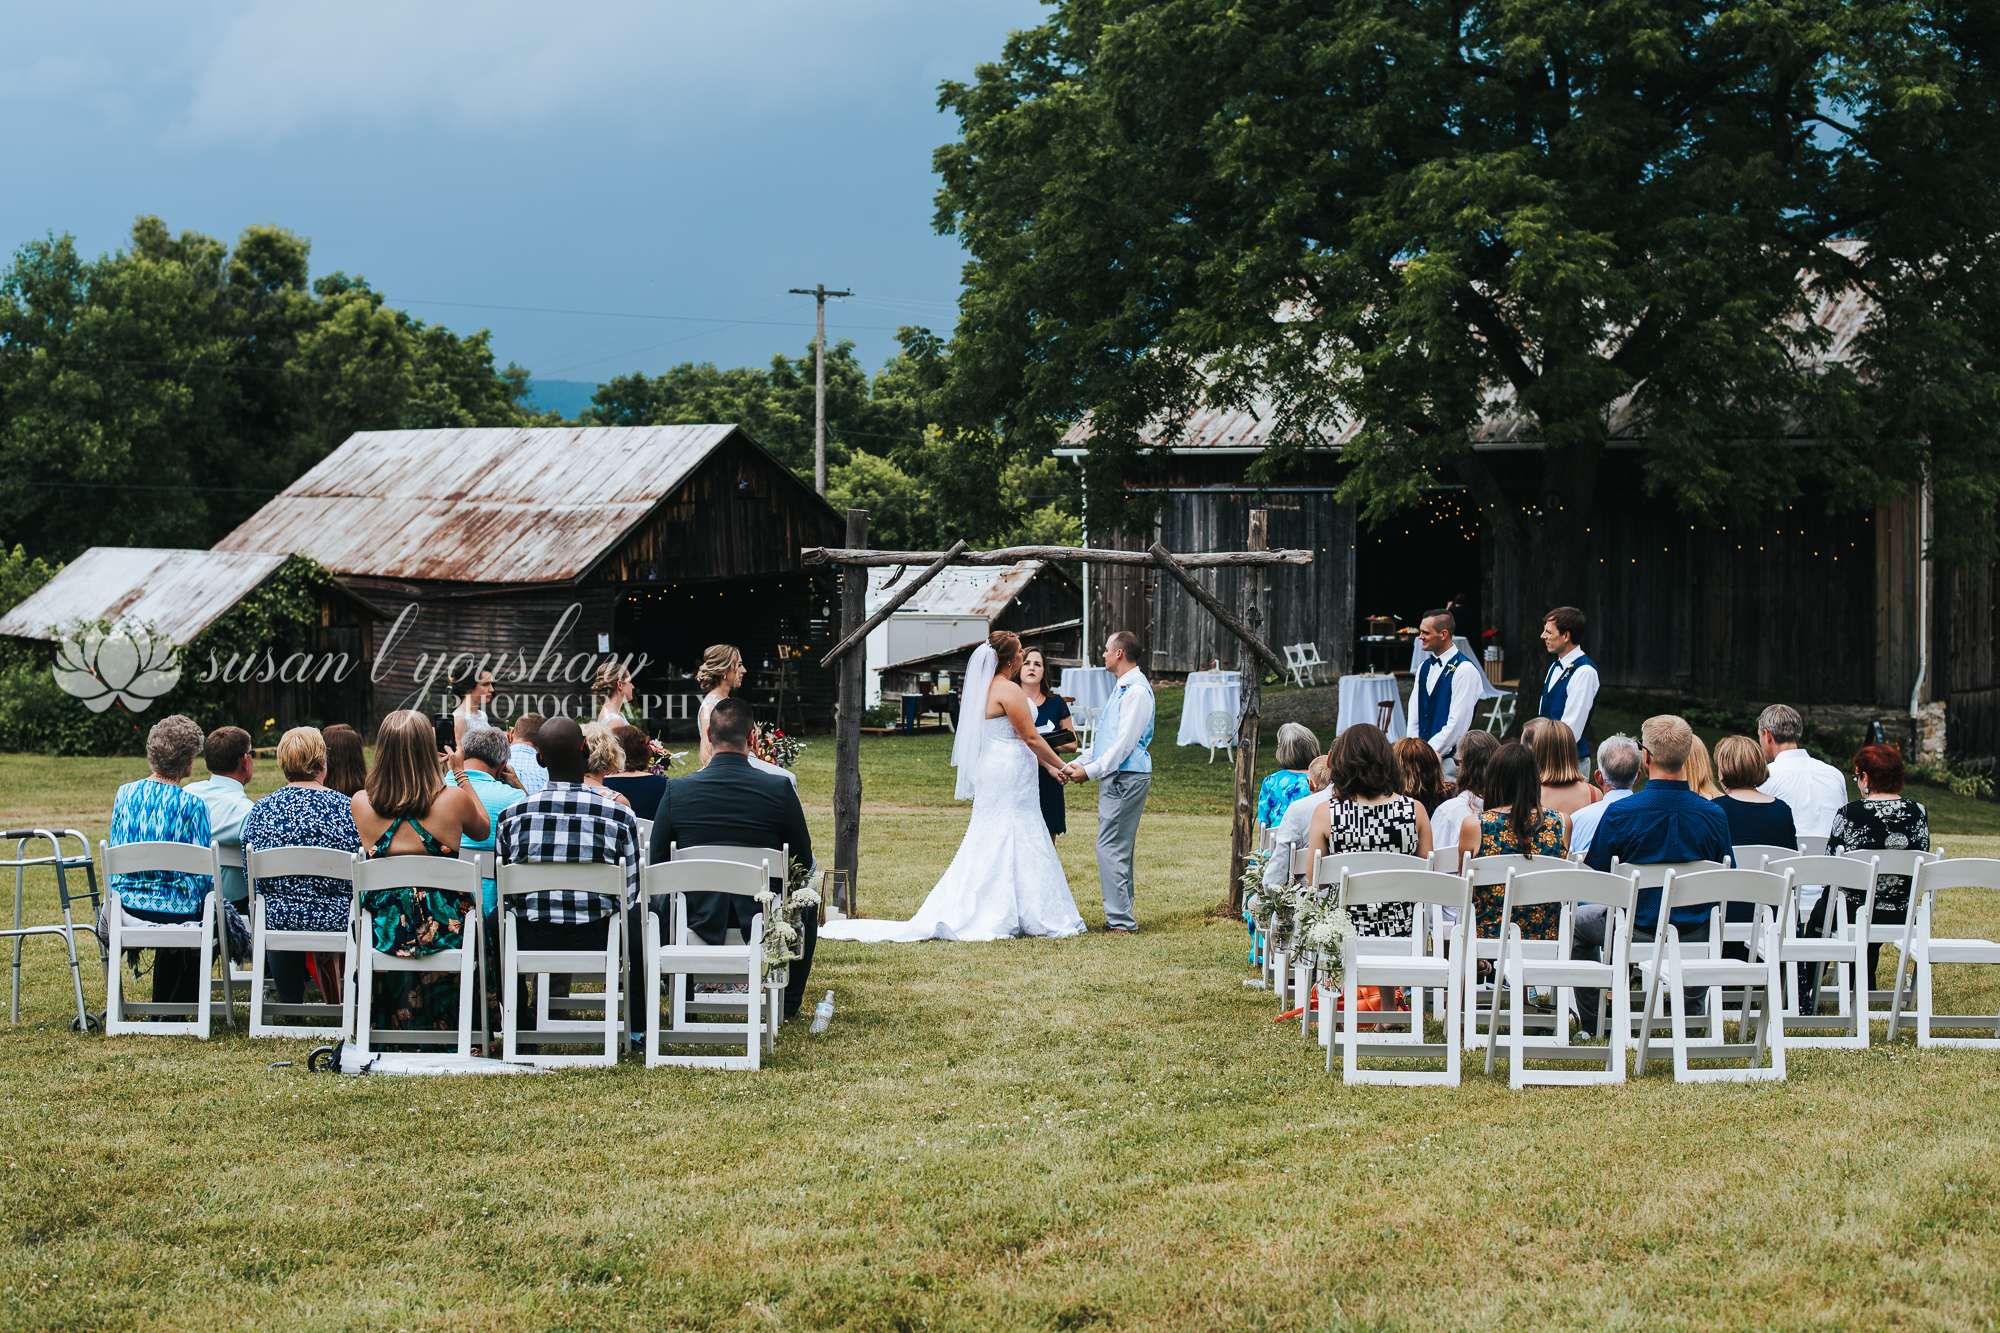 Erin and Jason Wedding Photos 07-06-2019 SLY Photography-74.jpg